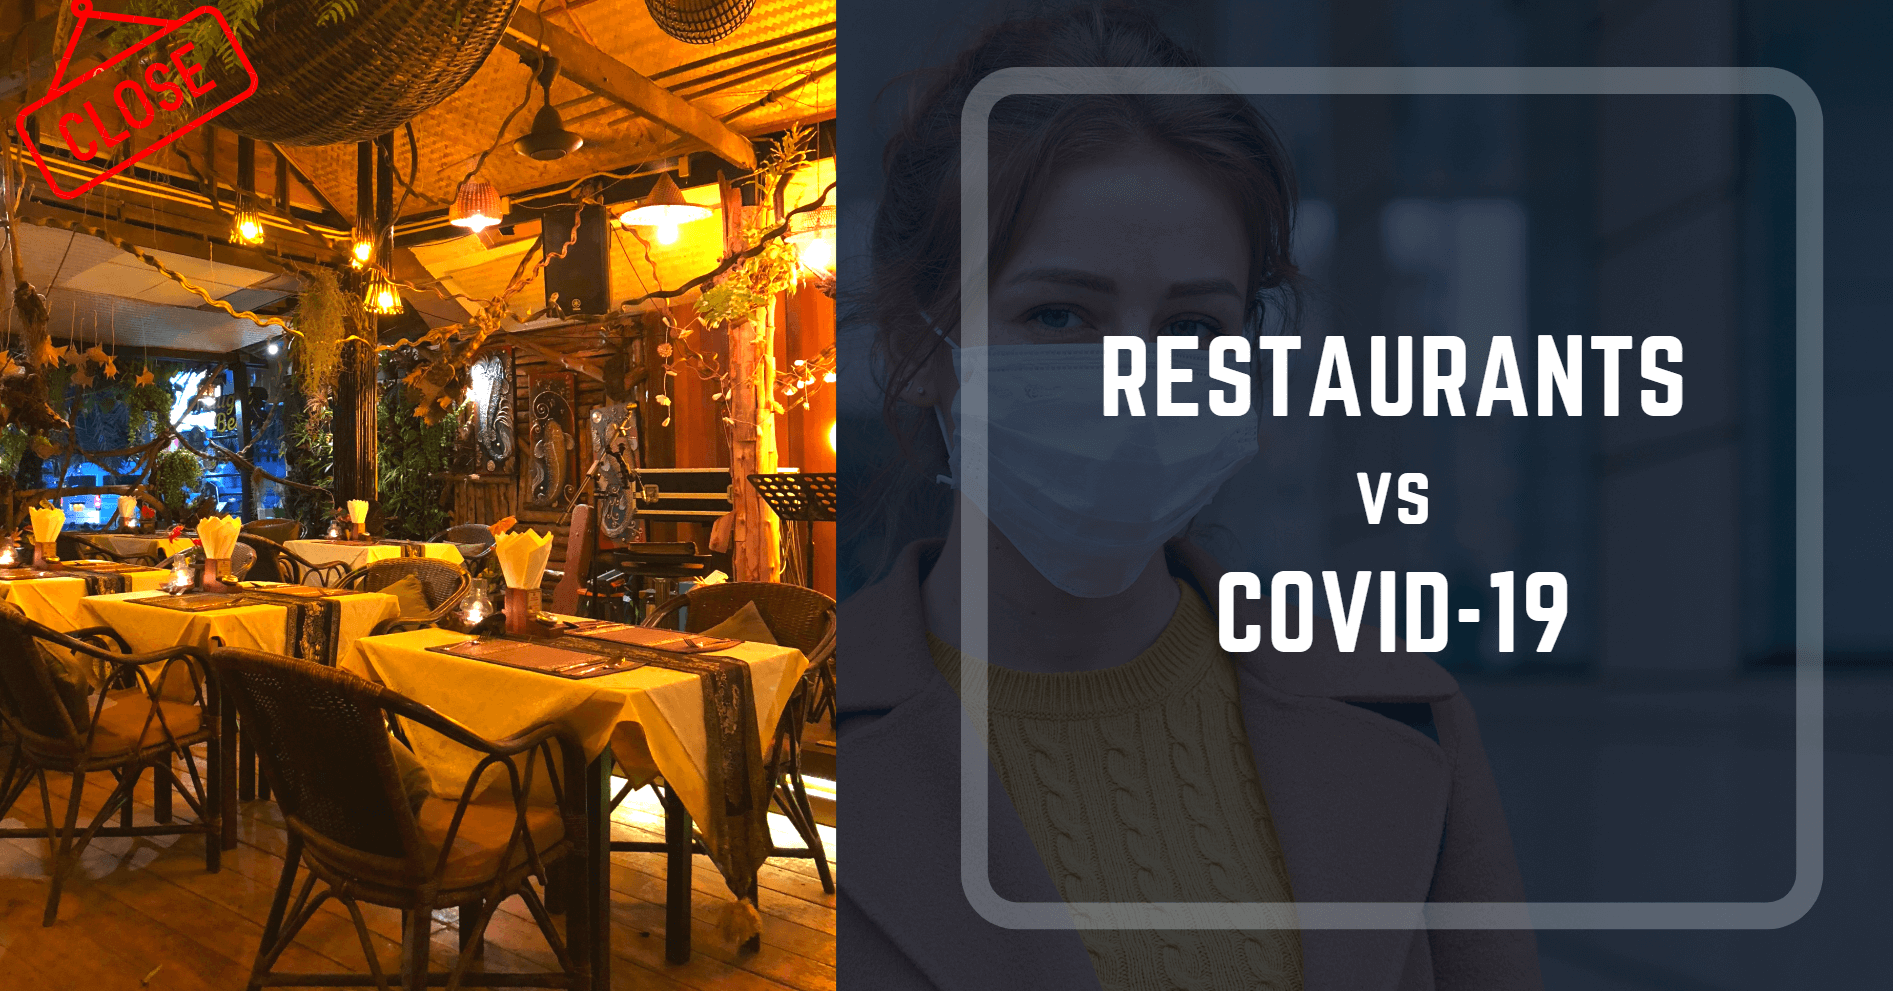 Restaurant business vs Corona